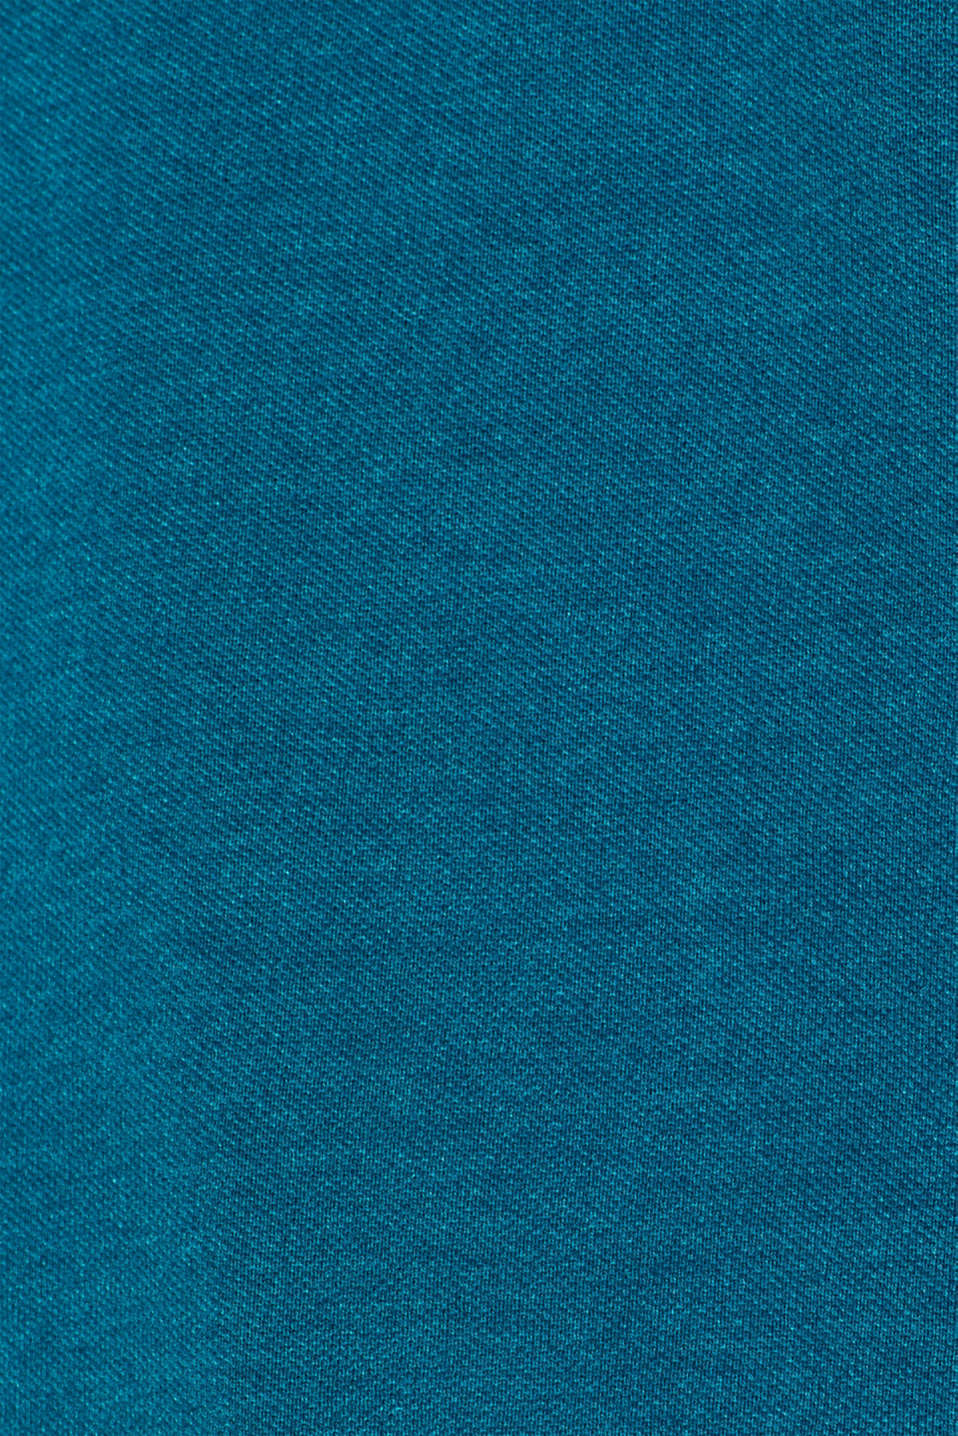 Piqué polo shirt in blended cotton, TEAL BLUE, detail image number 4